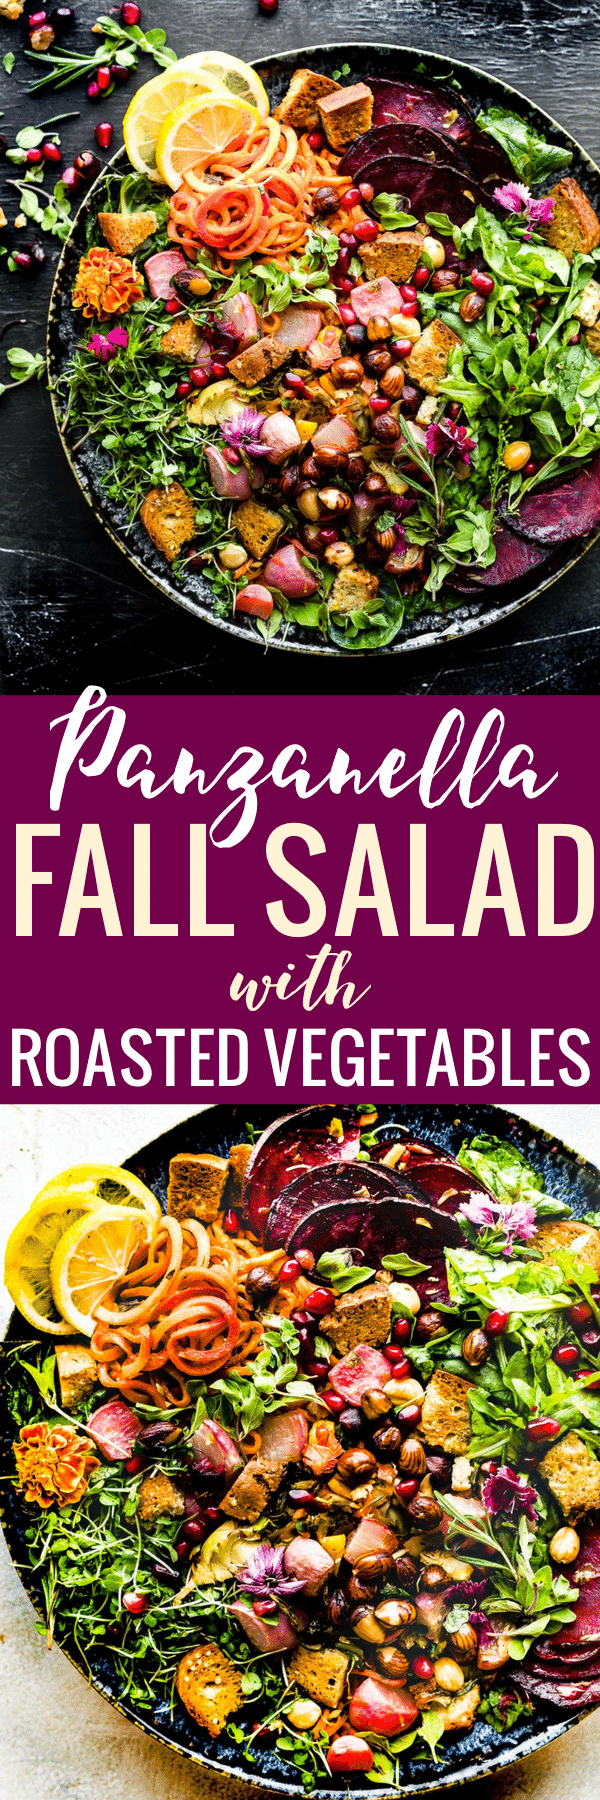 This Roasted Vegetable Panzanella Fall Salad is the perfect Autumn dish to keep you nourished all season. A wholesome Fall salad. Dairy free, gluten free. www.cottercrunch.com